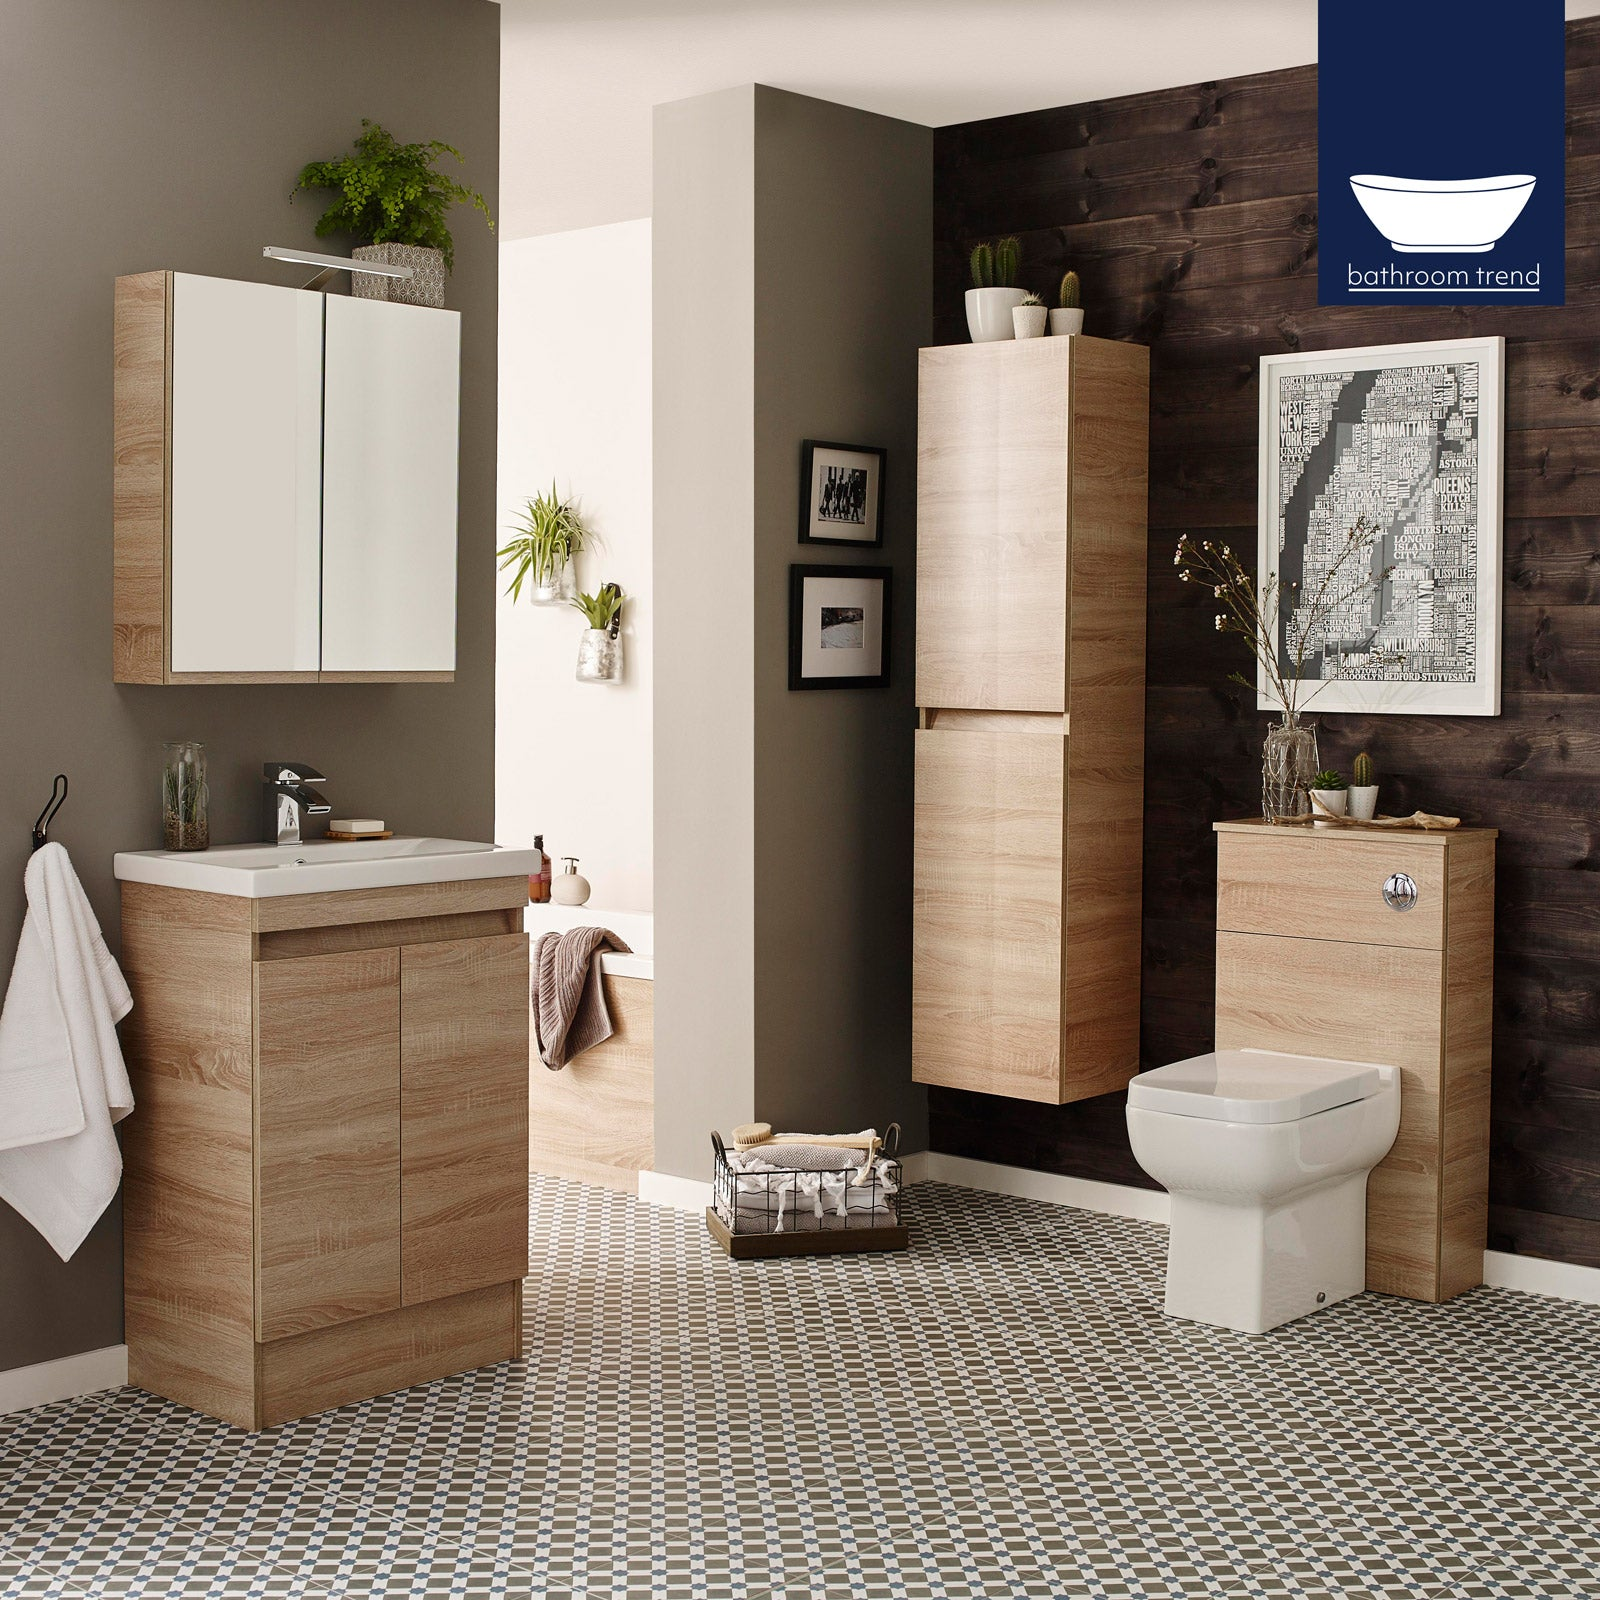 Details About Modern High Gloss Designer Bathroom Furniture Metal Draw Box Made In Uk